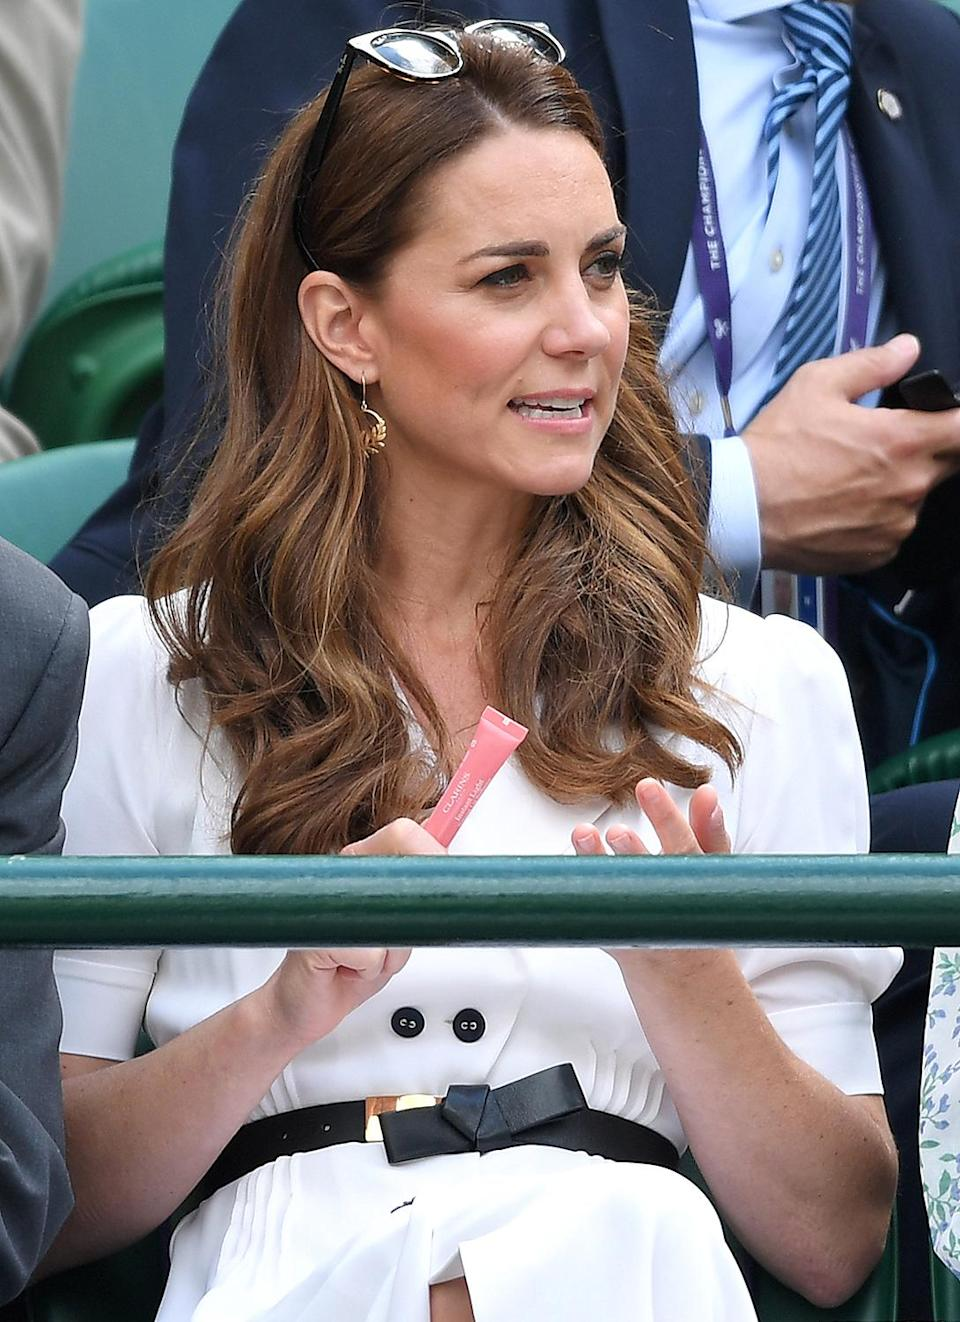 """<p>Kate pulled out this lip gloss from her purse at Wimbledon 2019 to keep her makeup fresh, even in the summer sun.</p> <p><strong>Buy It! Clarins Instant Light Natural Lip Perfector, <a href=""""https://www.amazon.com/Clarins-Instant-Light-Natural-Perfector/dp/B00274Z6HO/?ots=1&tag=people0d0-20&linkCode=w50"""" rel=""""sponsored noopener"""" target=""""_blank"""" data-ylk=""""slk:$25"""" class=""""link rapid-noclick-resp"""">$25</a></strong></p> <p><strong>Get the Look!<br></strong><strong>Nars Lip Gloss, <a href=""""https://www.pntrac.com/t/8-10989-131940-141079?sid=PEO18RegalMothersDayGiftsInspiredbyRealLifeRoyalMomspetitsRoyGal12686606202105I